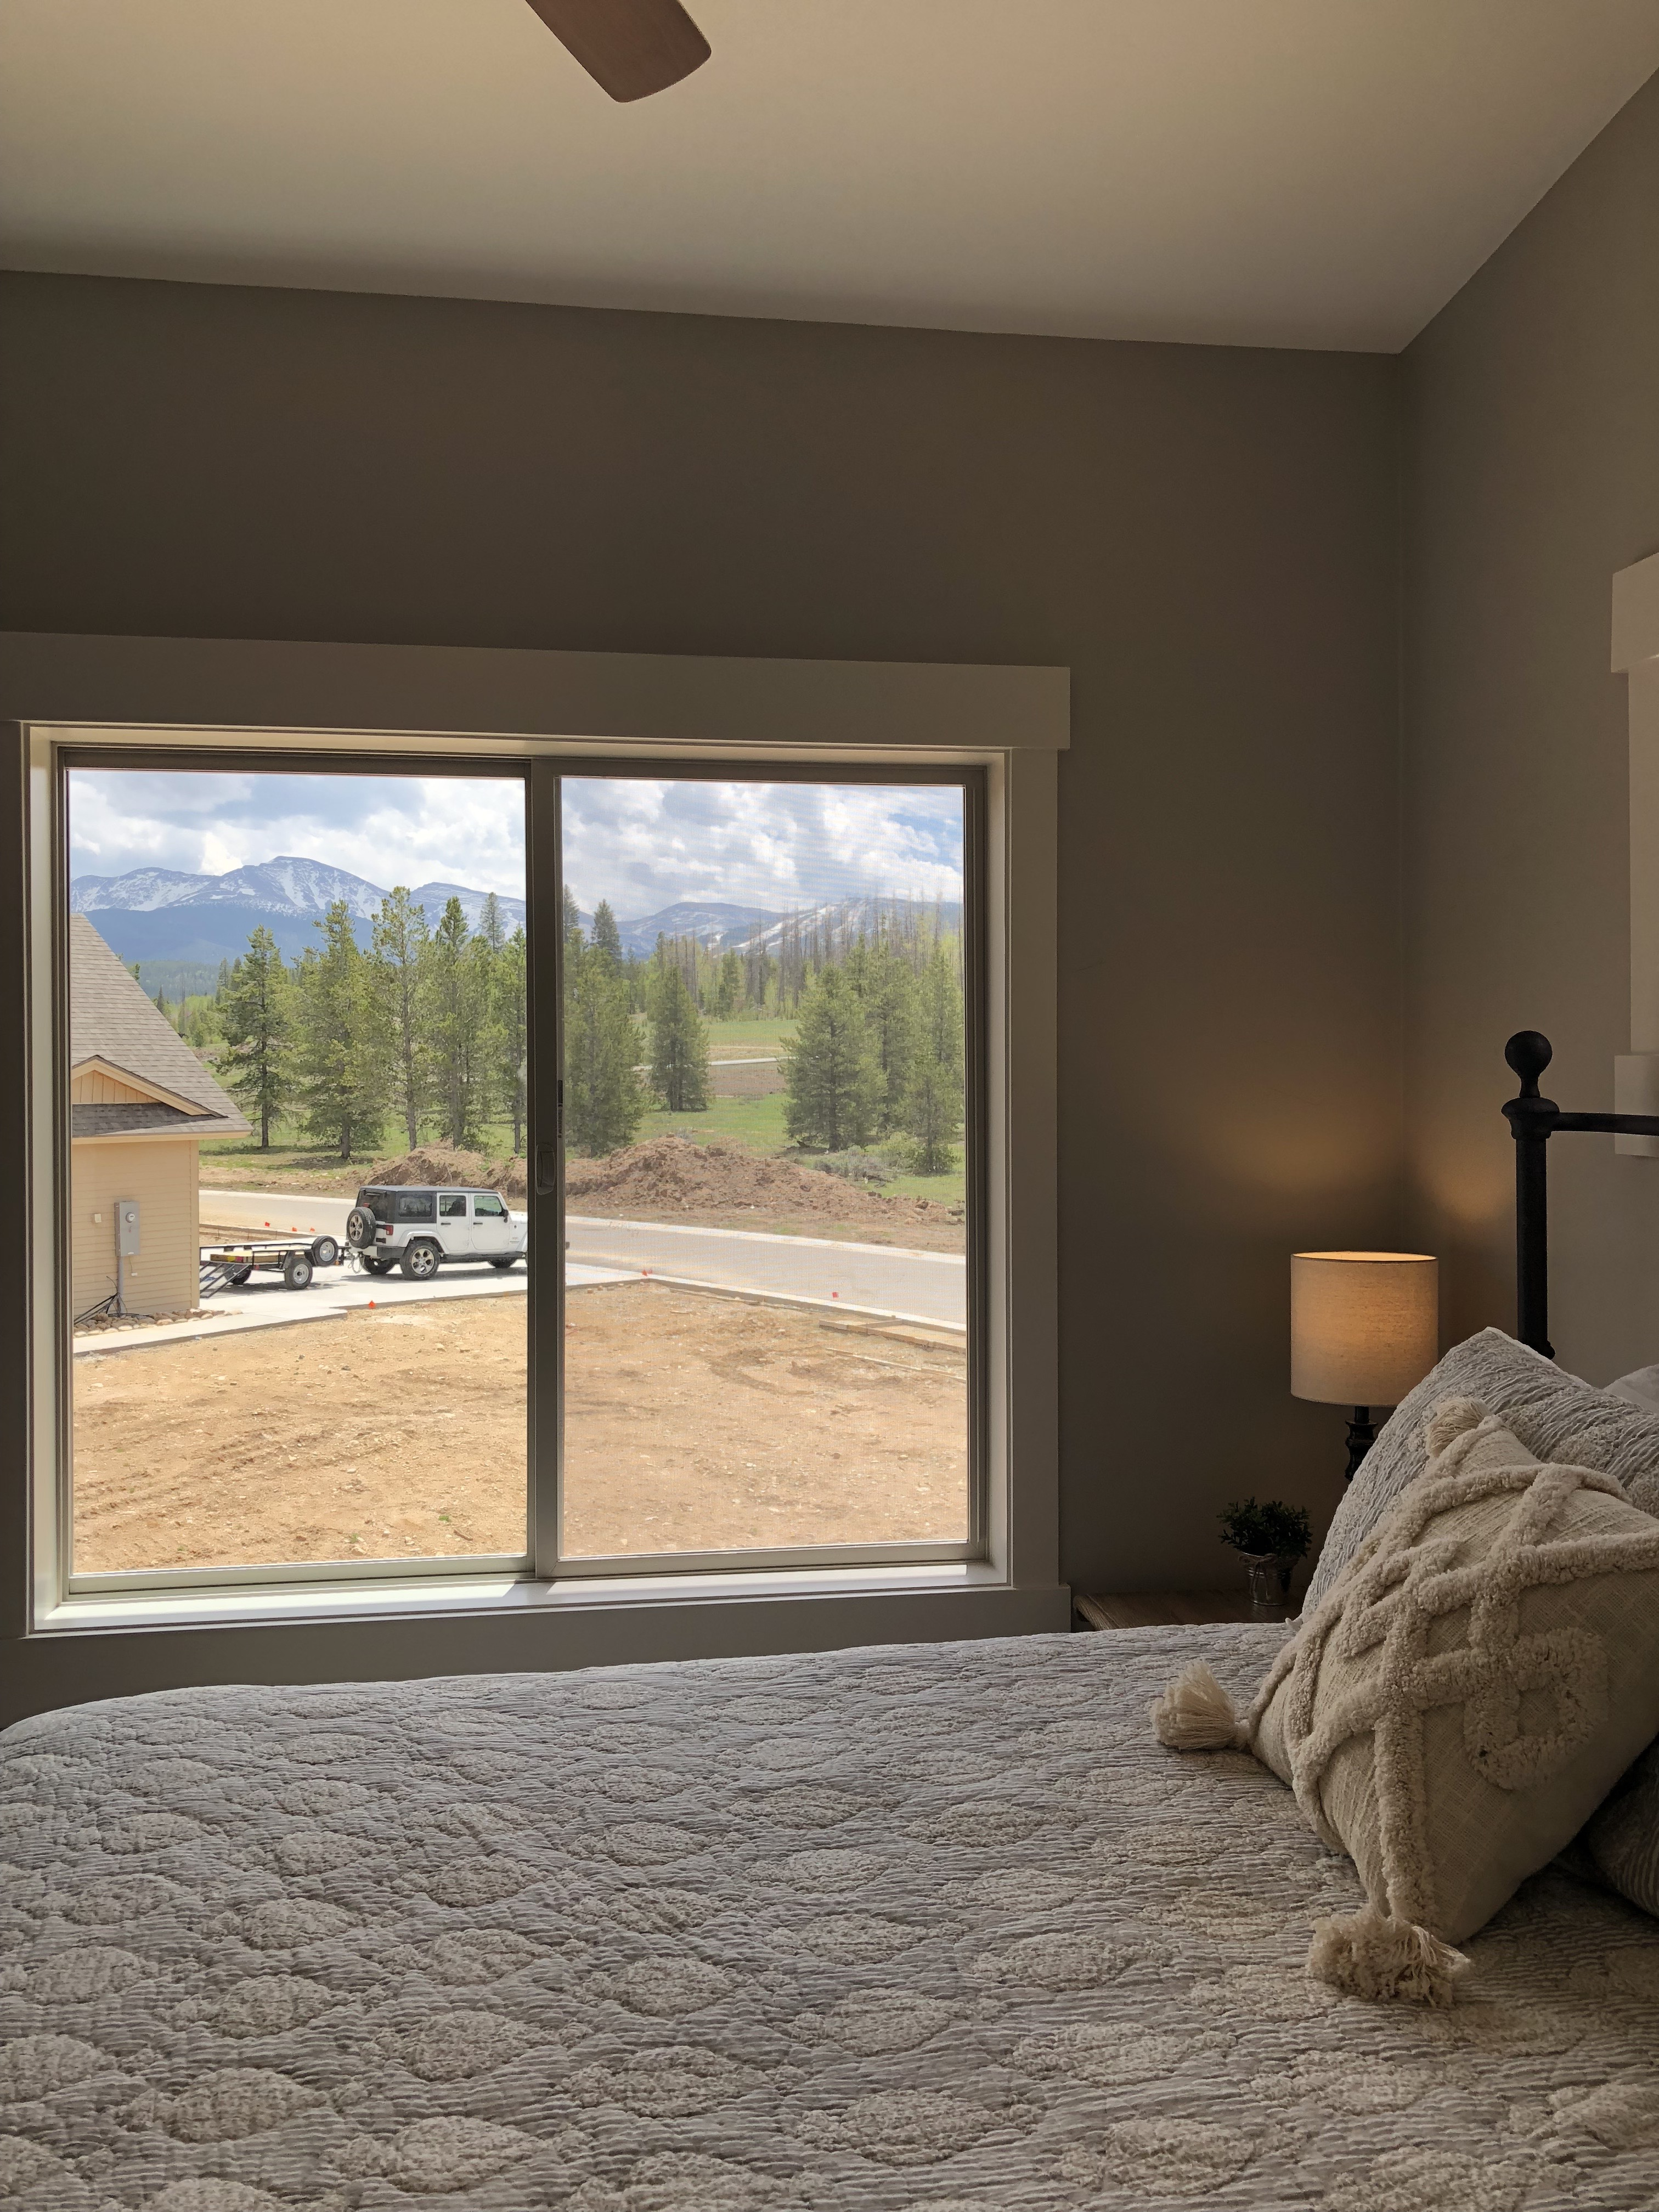 Third bedroom view of Winter Park